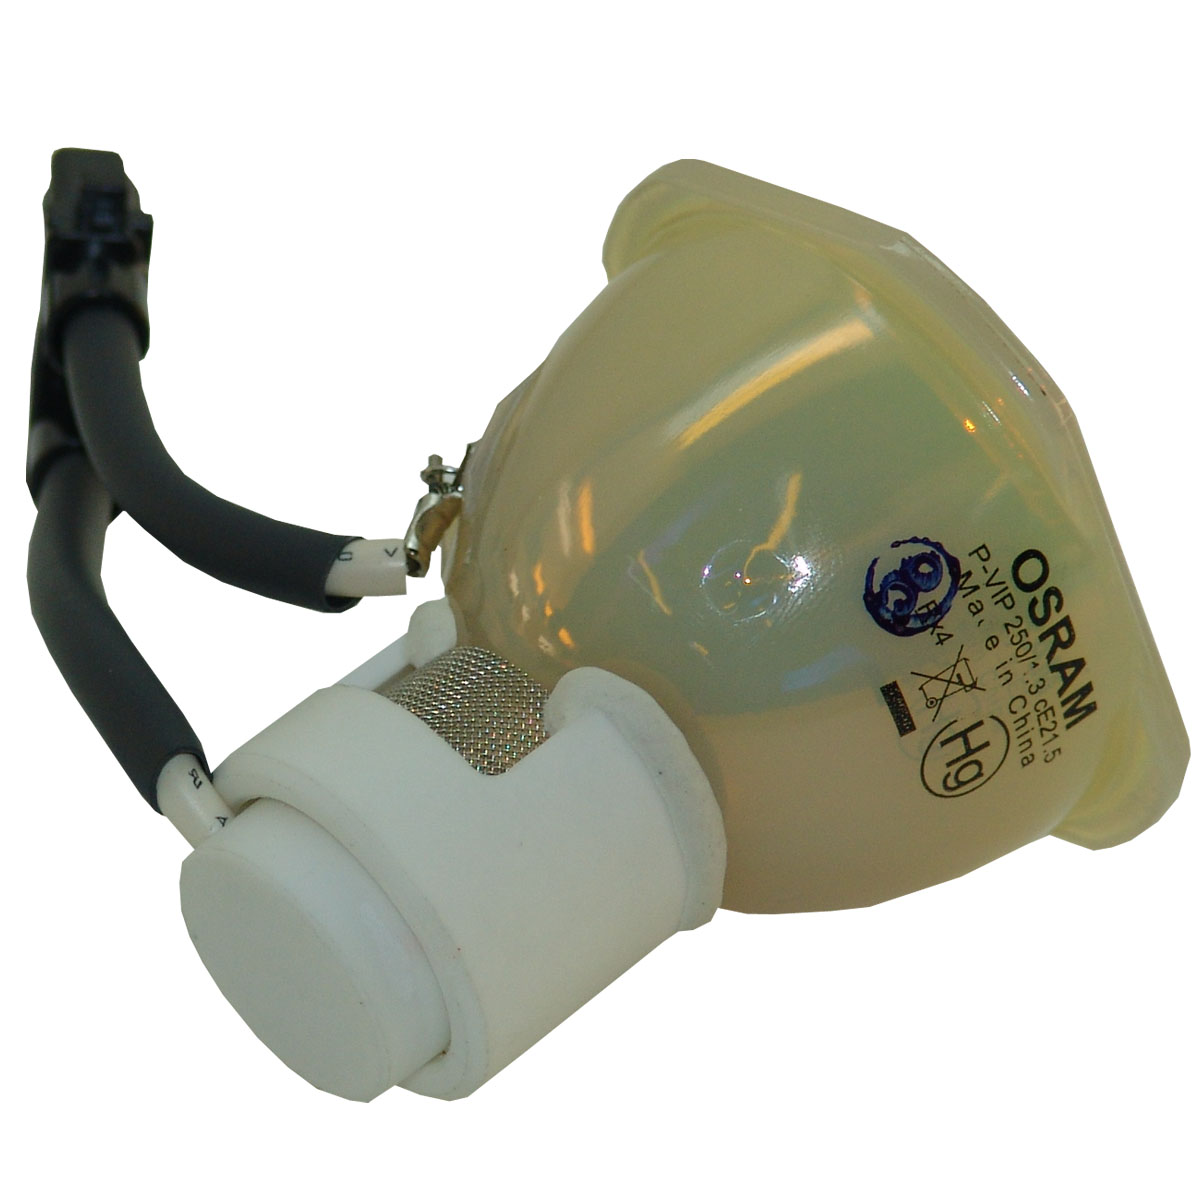 Lutema Economy for Mitsubishi LVP-XD400 Projector Lamp (Bulb Only) - image 3 de 5